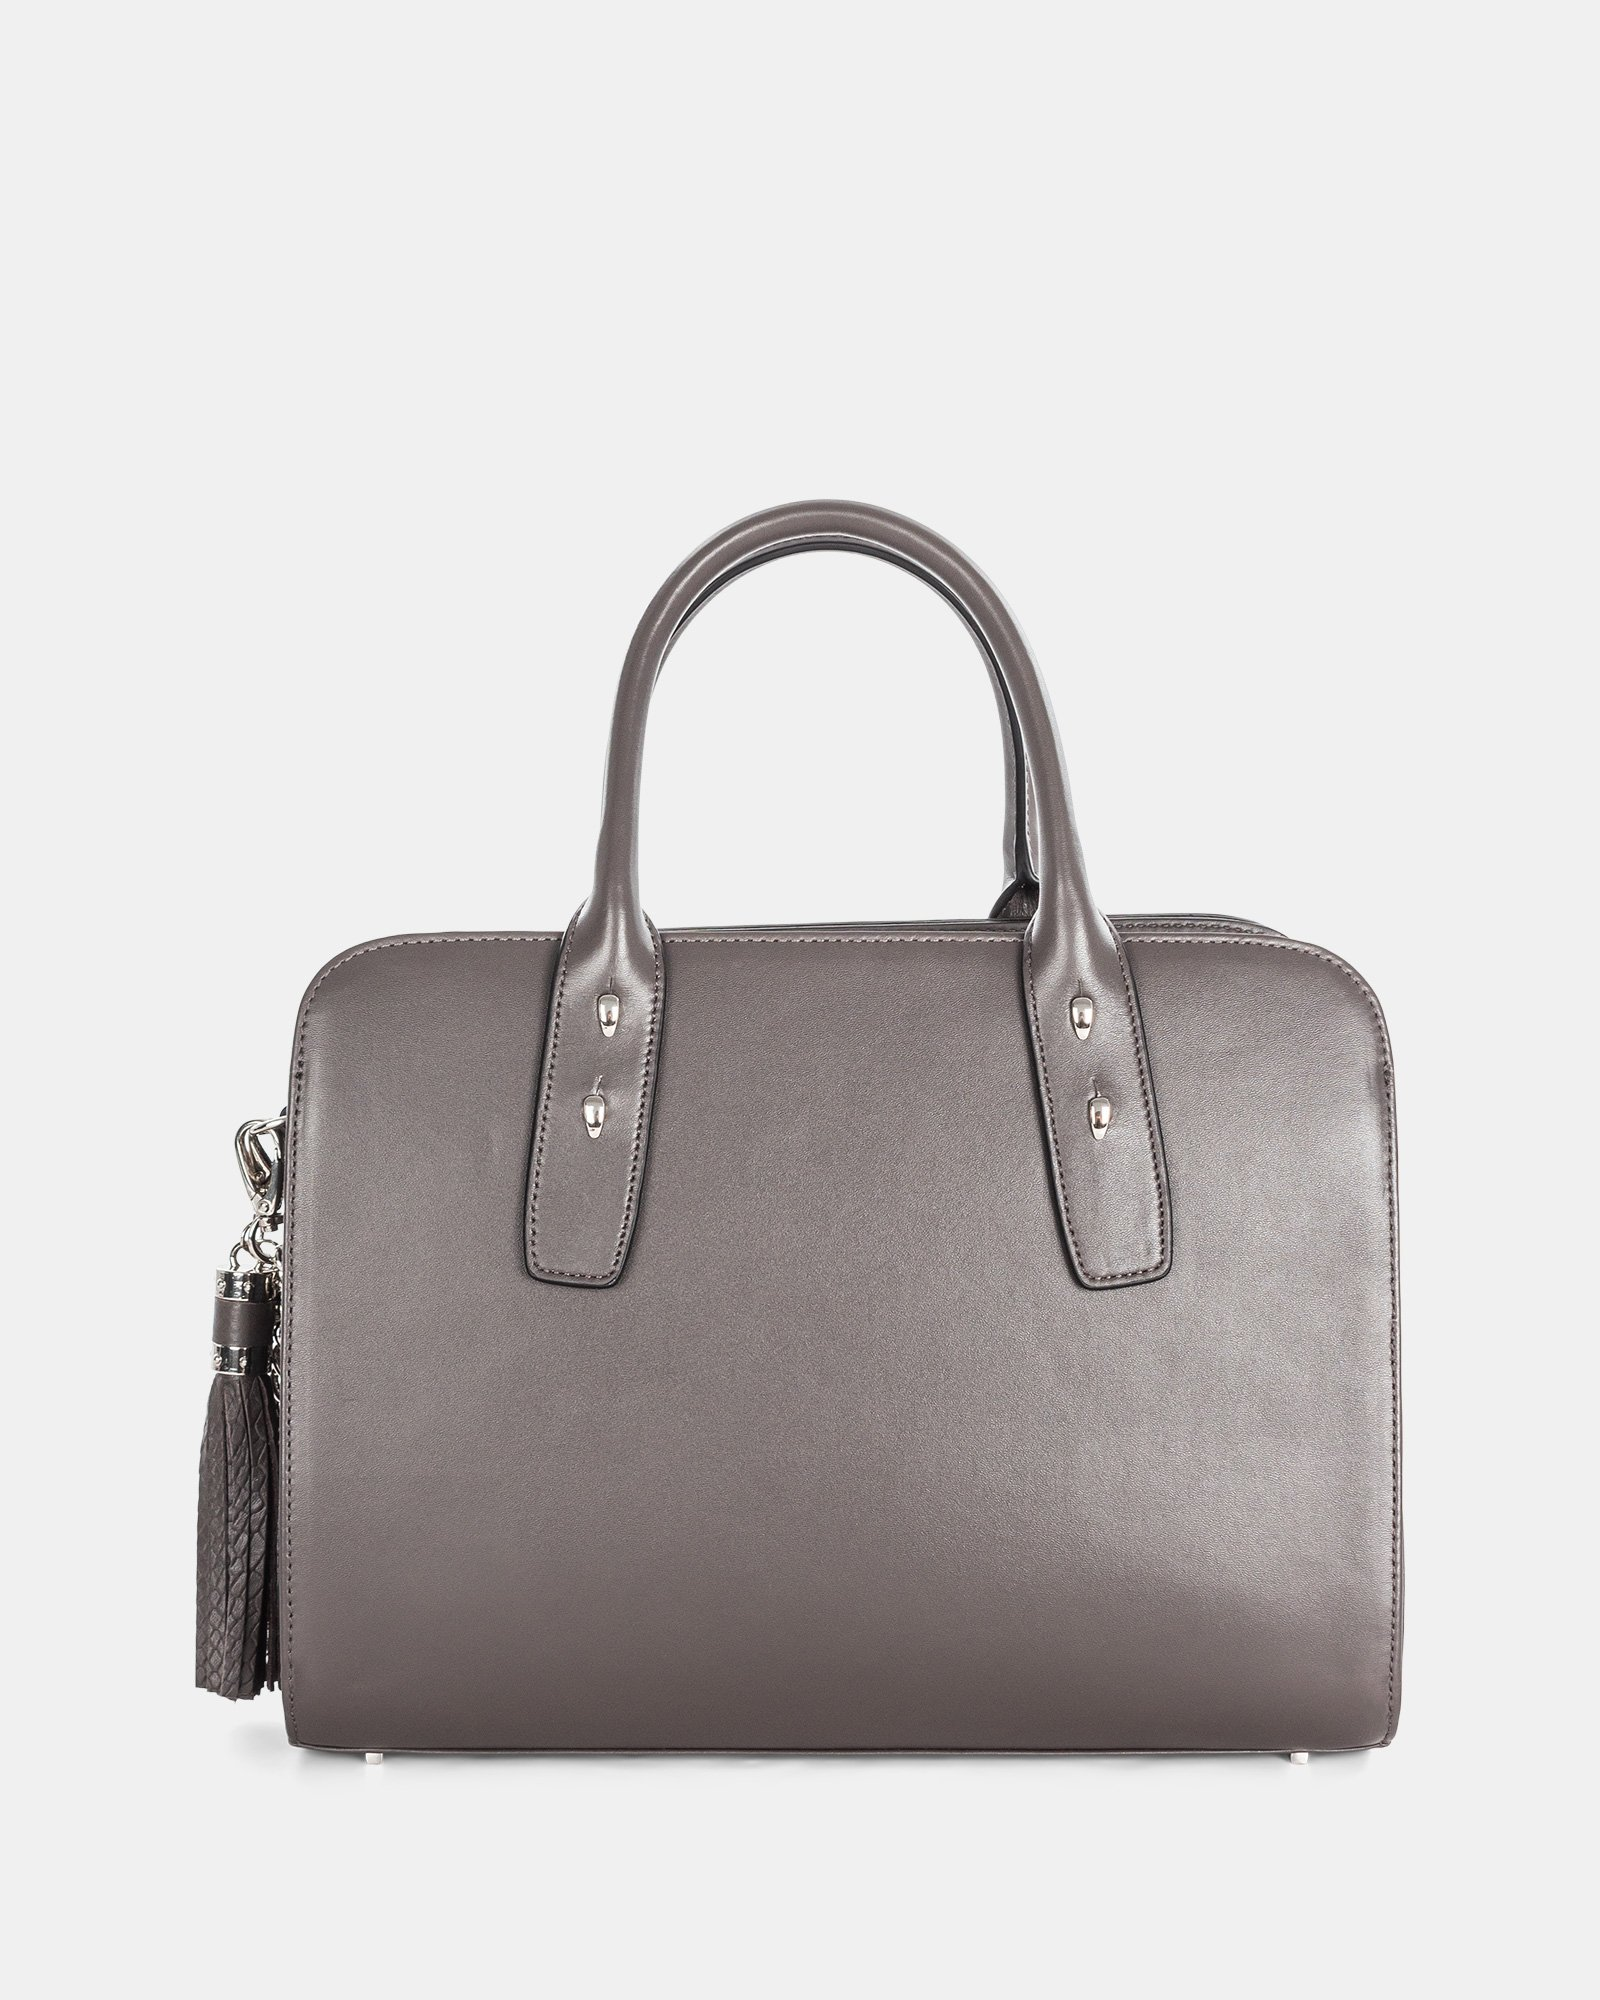 Elegy - LEATHER SATCHEL with Side pockets with magnetic closure - SmokeBrown - Céline Dion - Zoom